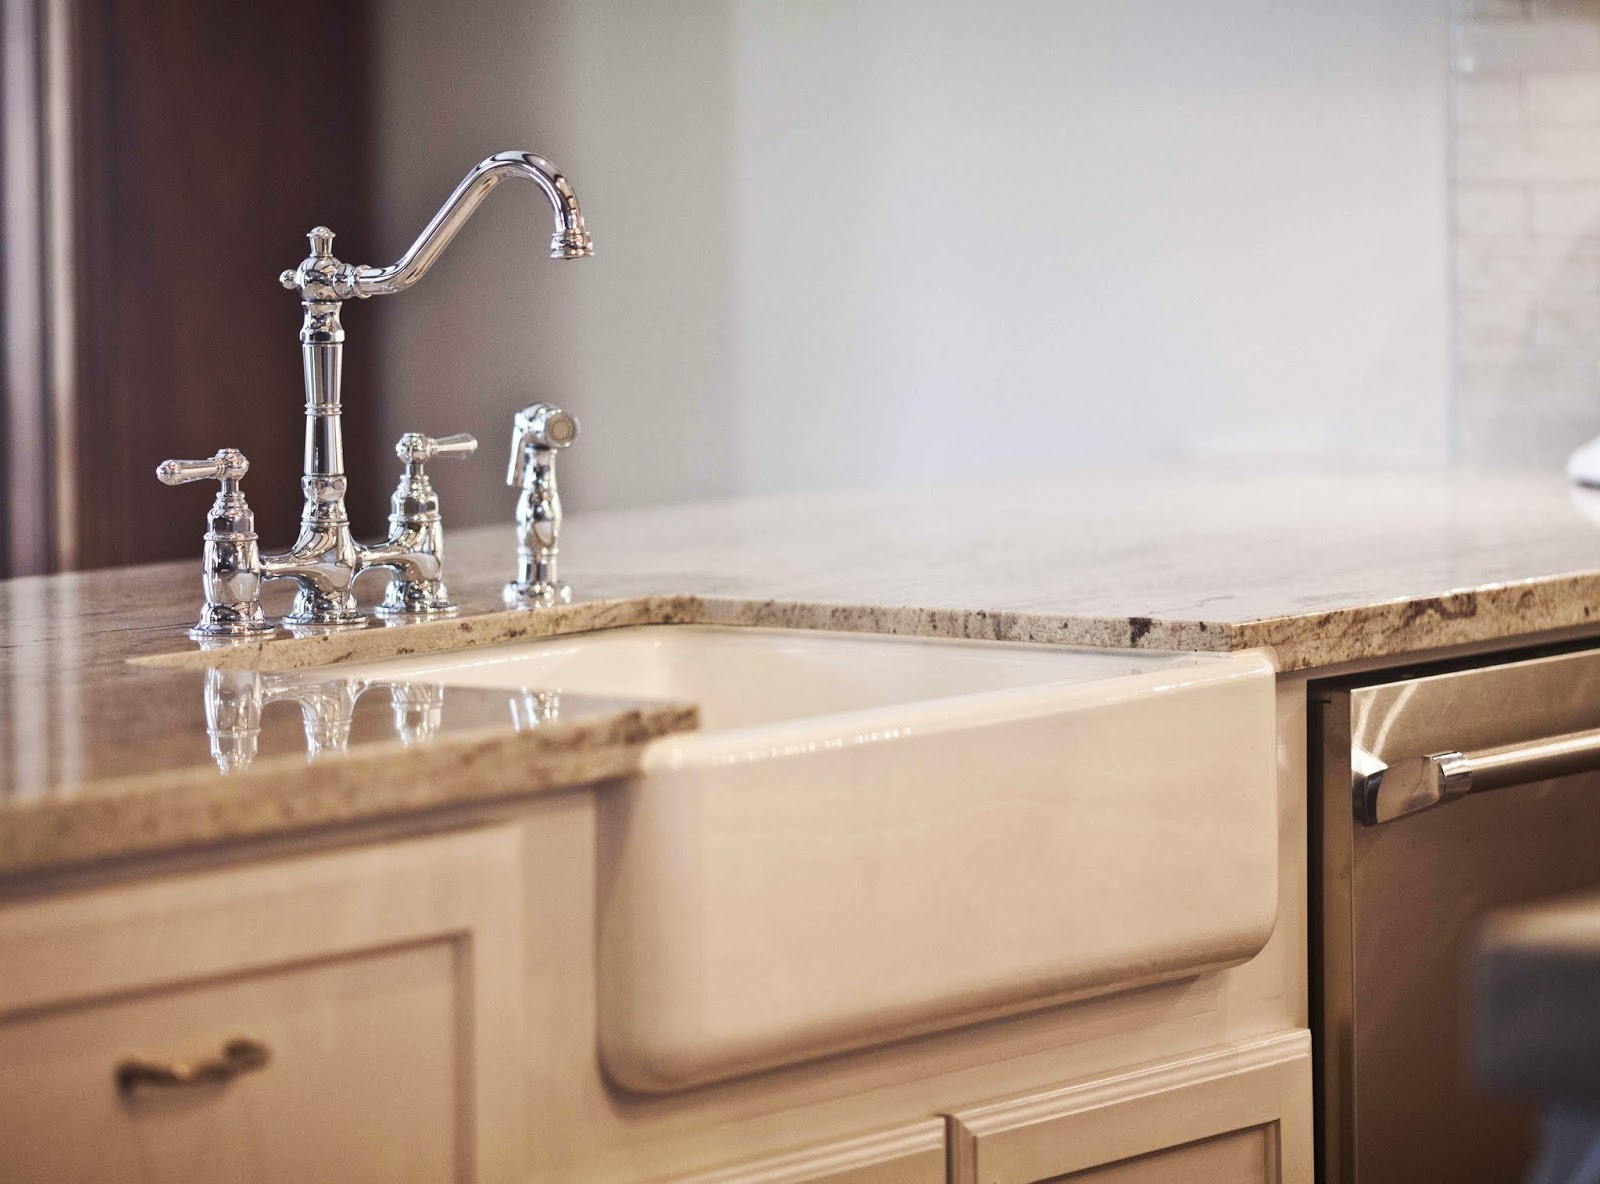 Chrome faucet farmhouse sink Kitchen